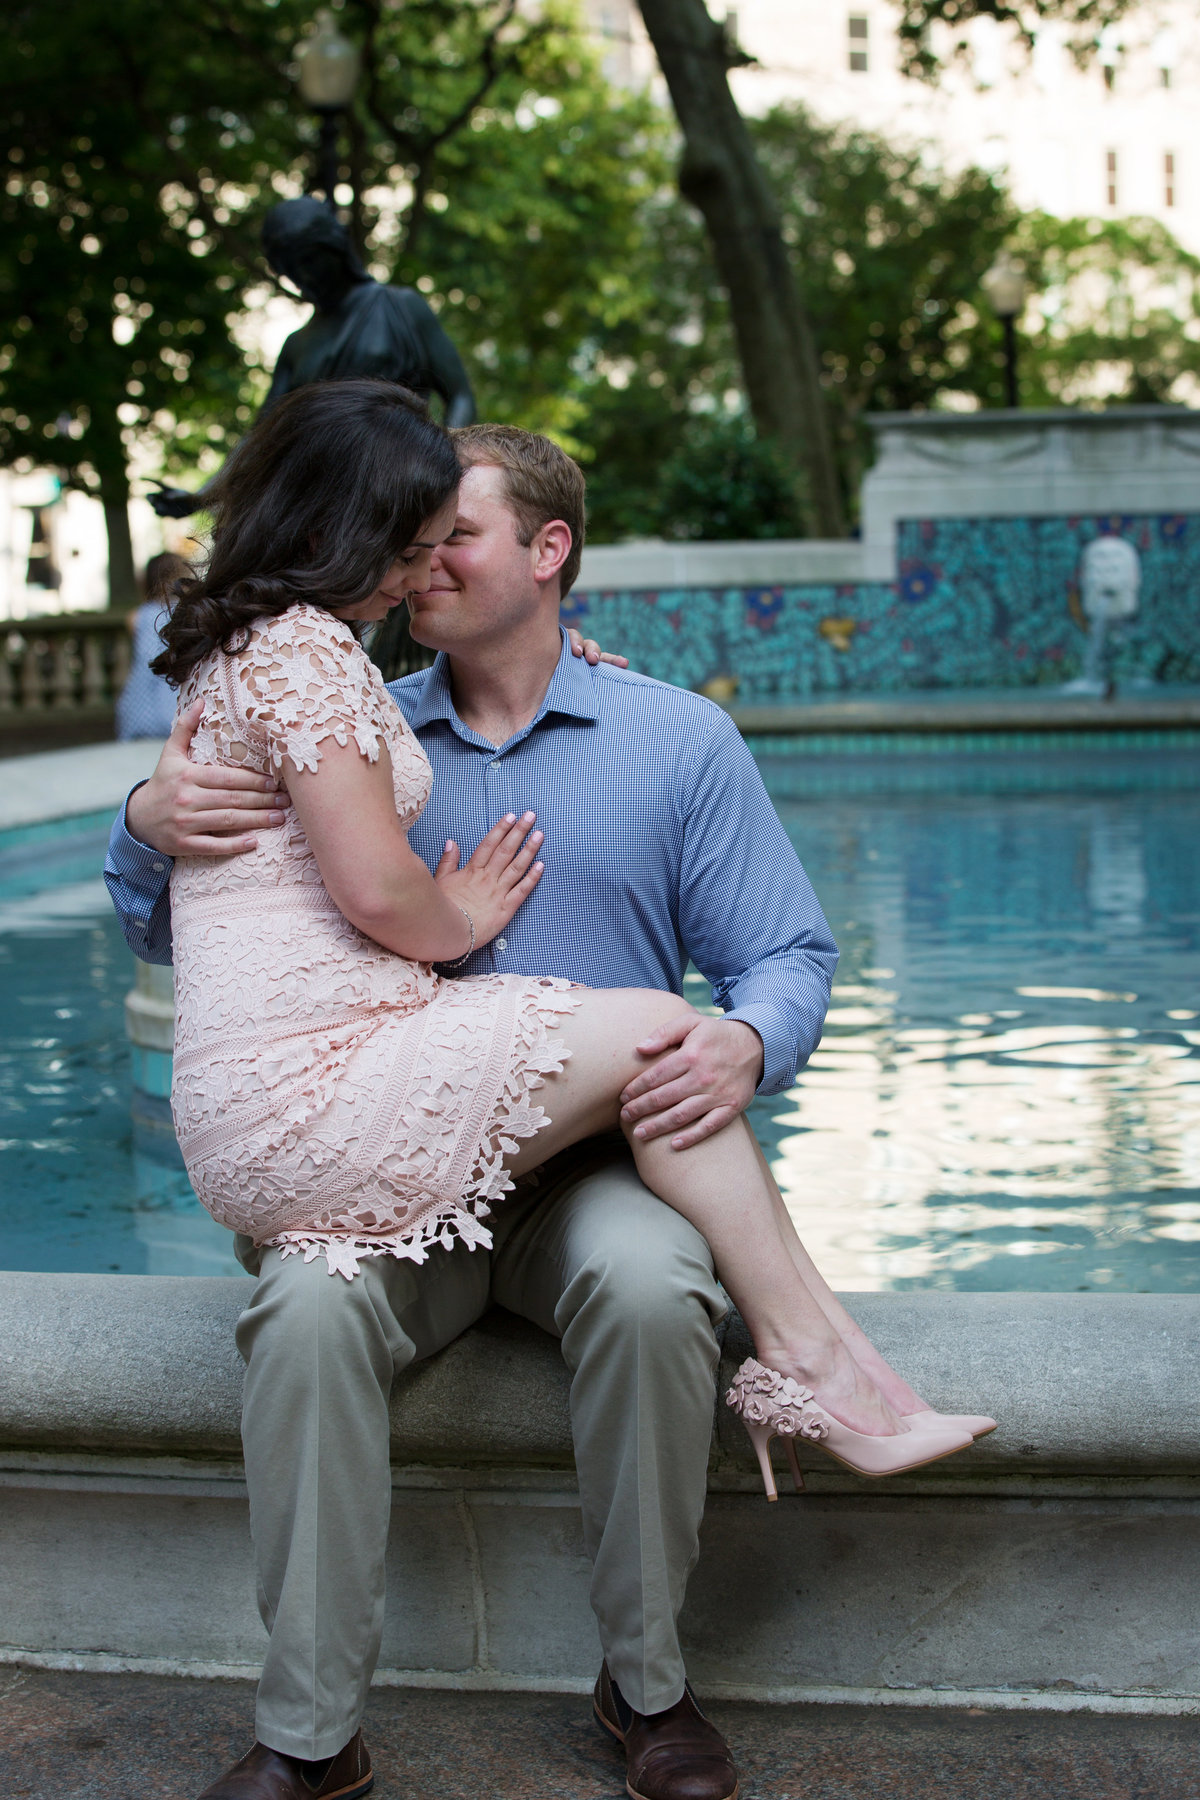 Rittenhouse-Square-Engagement-Mariya-Stecklair-Photography-96